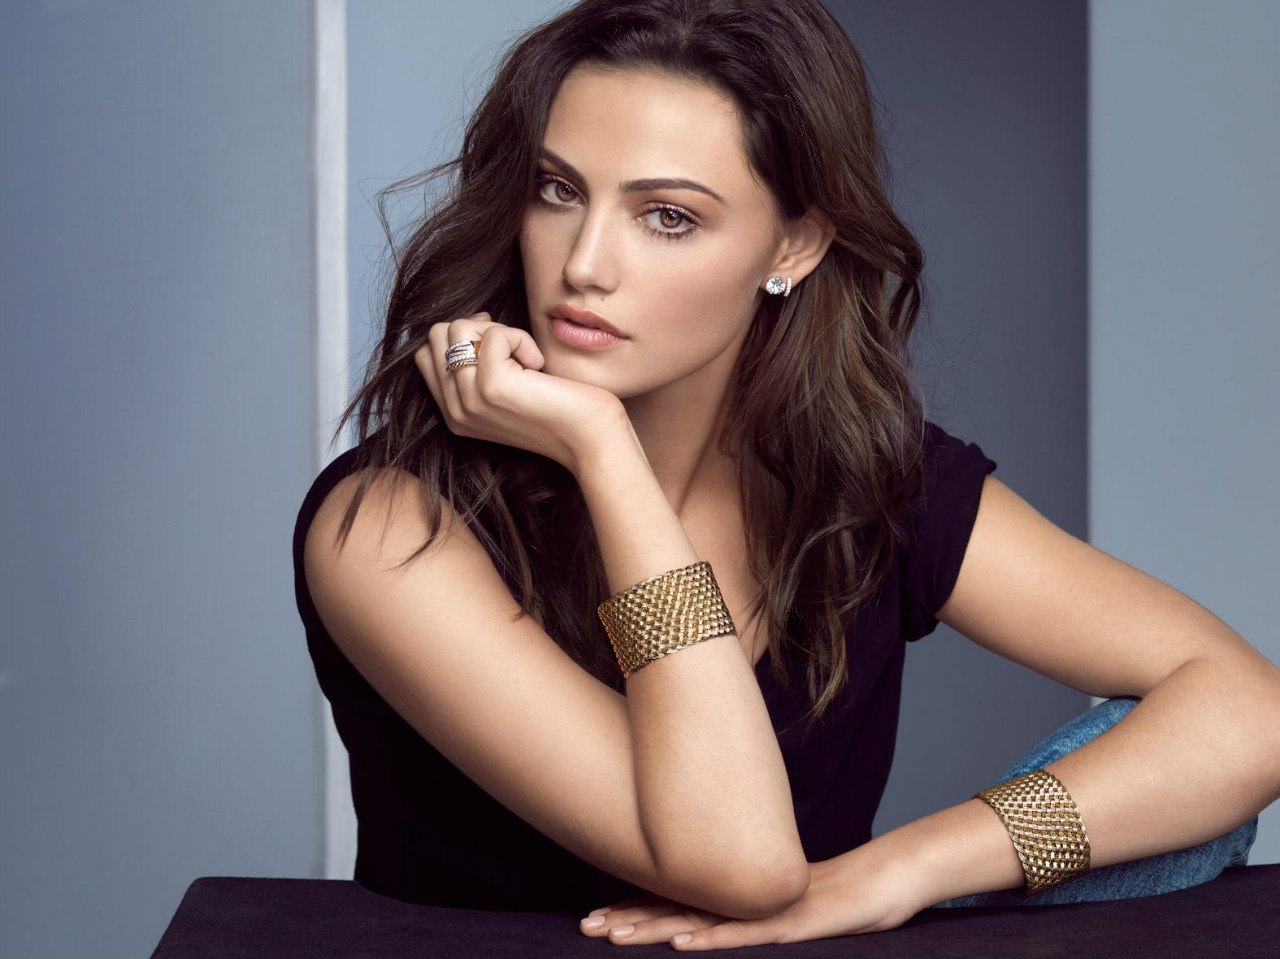 http://www.gotceleb.com/wp-content/uploads/celebrities/phoebe-tonkin/logan-jewellery-2013-collection-photoshoot/Phoebe%20Tonkin%20-%20Logan%20Jewellery%20-02.jpg